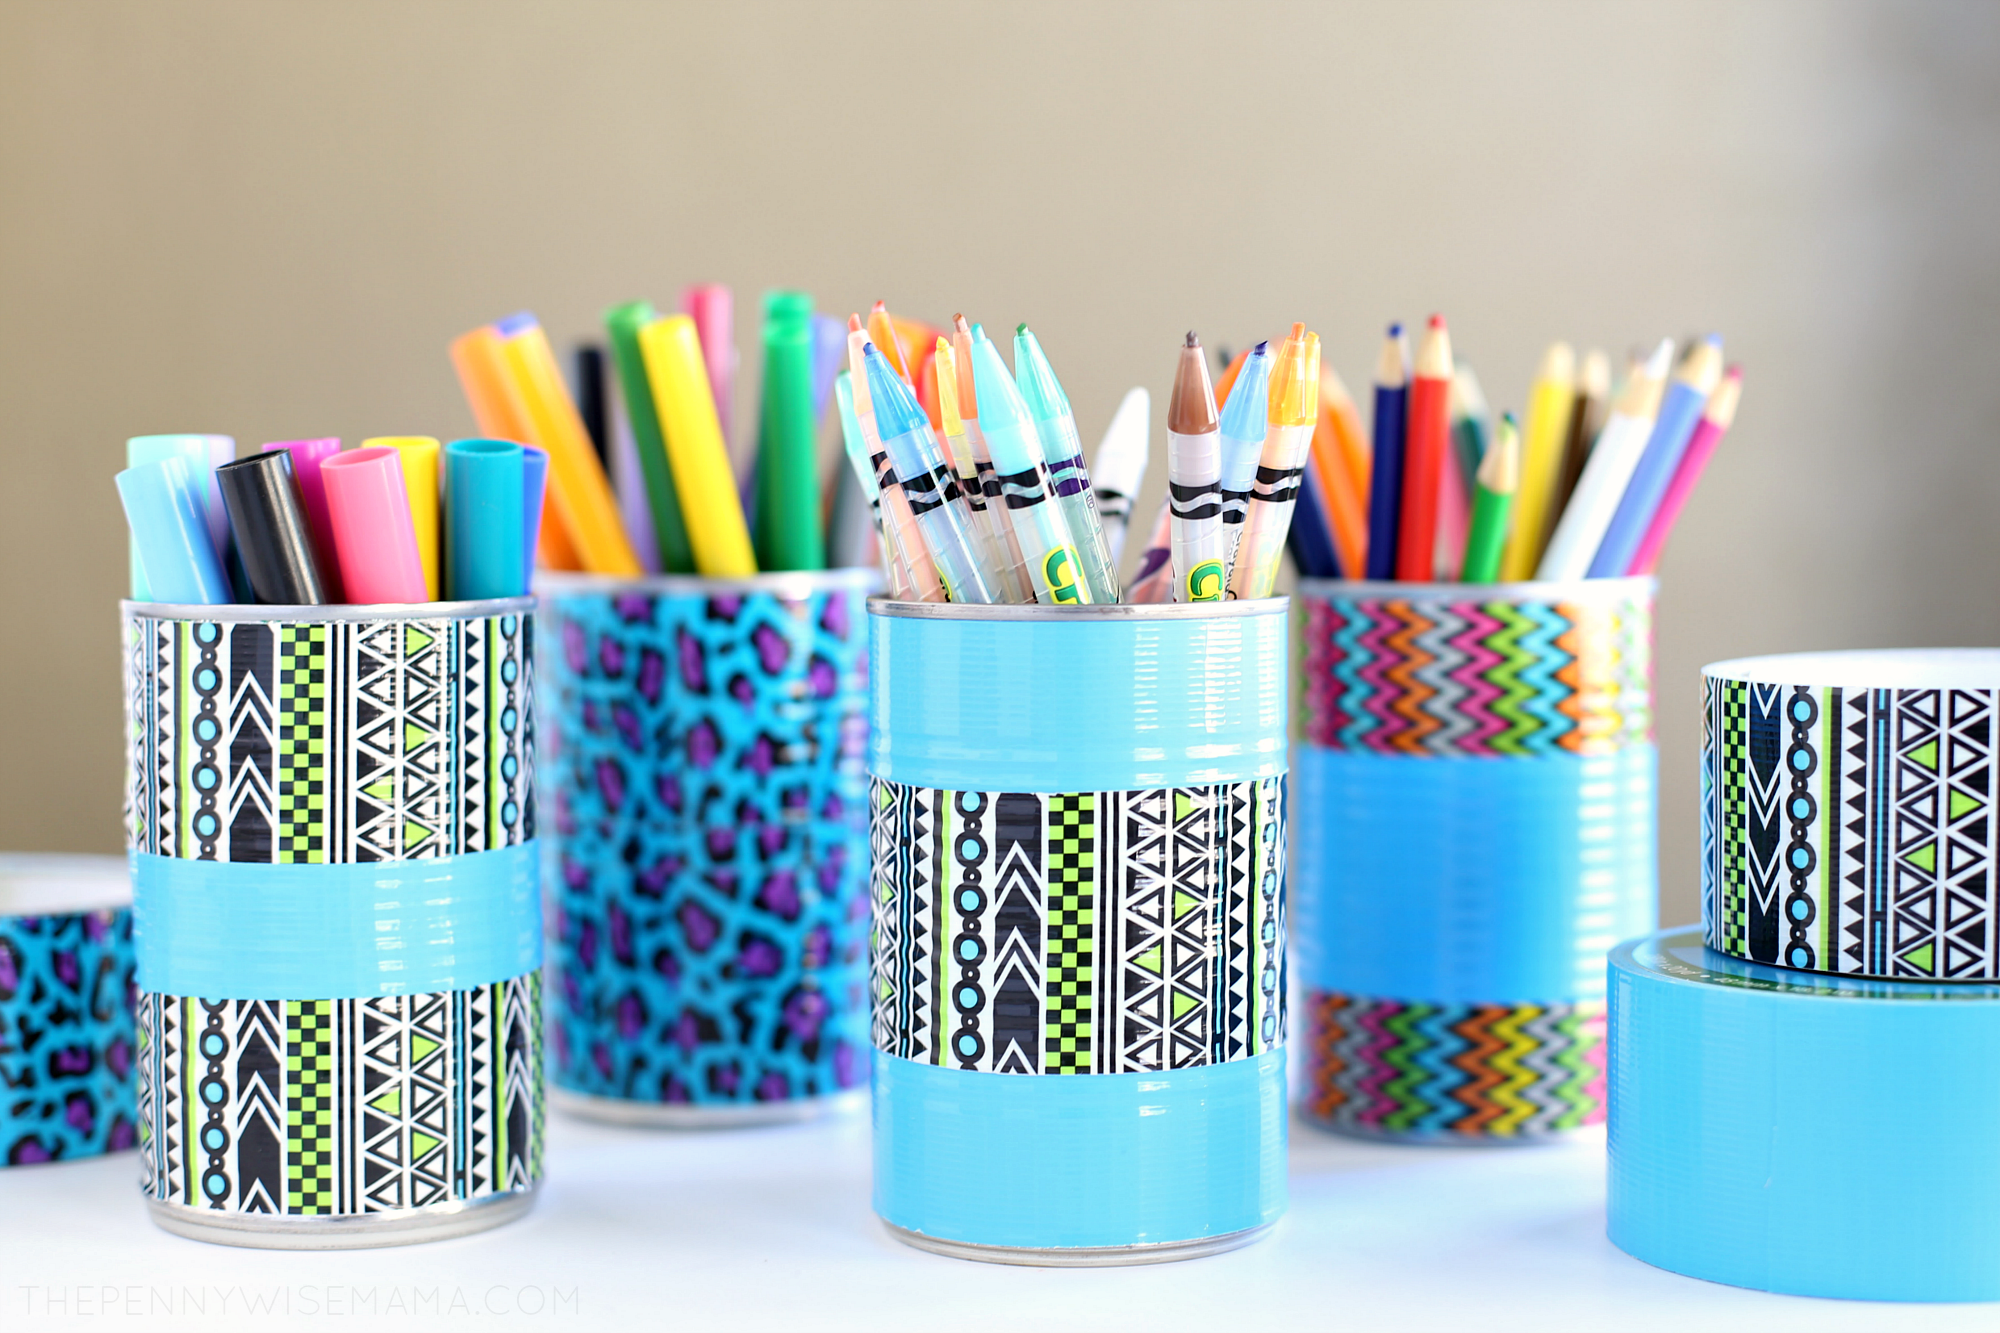 Plastic PEN Holder - DIY. Please minimize using of plastic and also try to reuse the used plastic bottles or items to decrease its effect on the :) Plastic PEN Holder DIY is an Easy way to reuse the plastic.